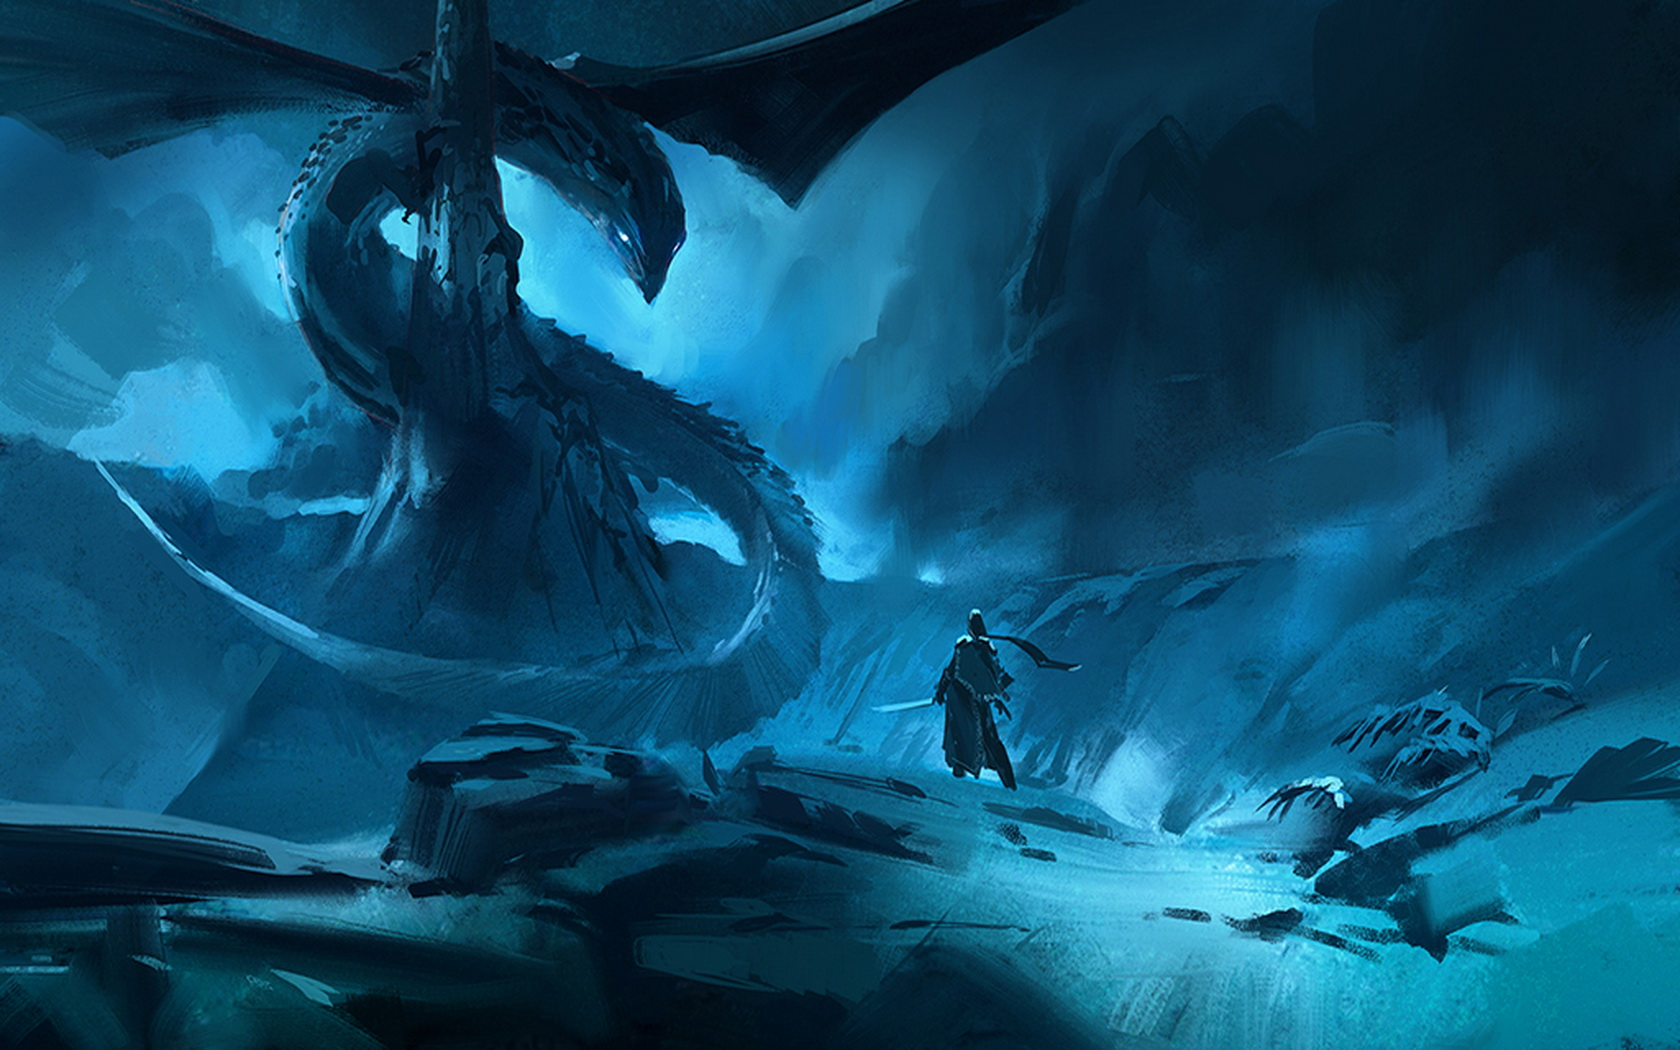 Dragon Wallpaper and Background Image   1680x1050   ID:396899